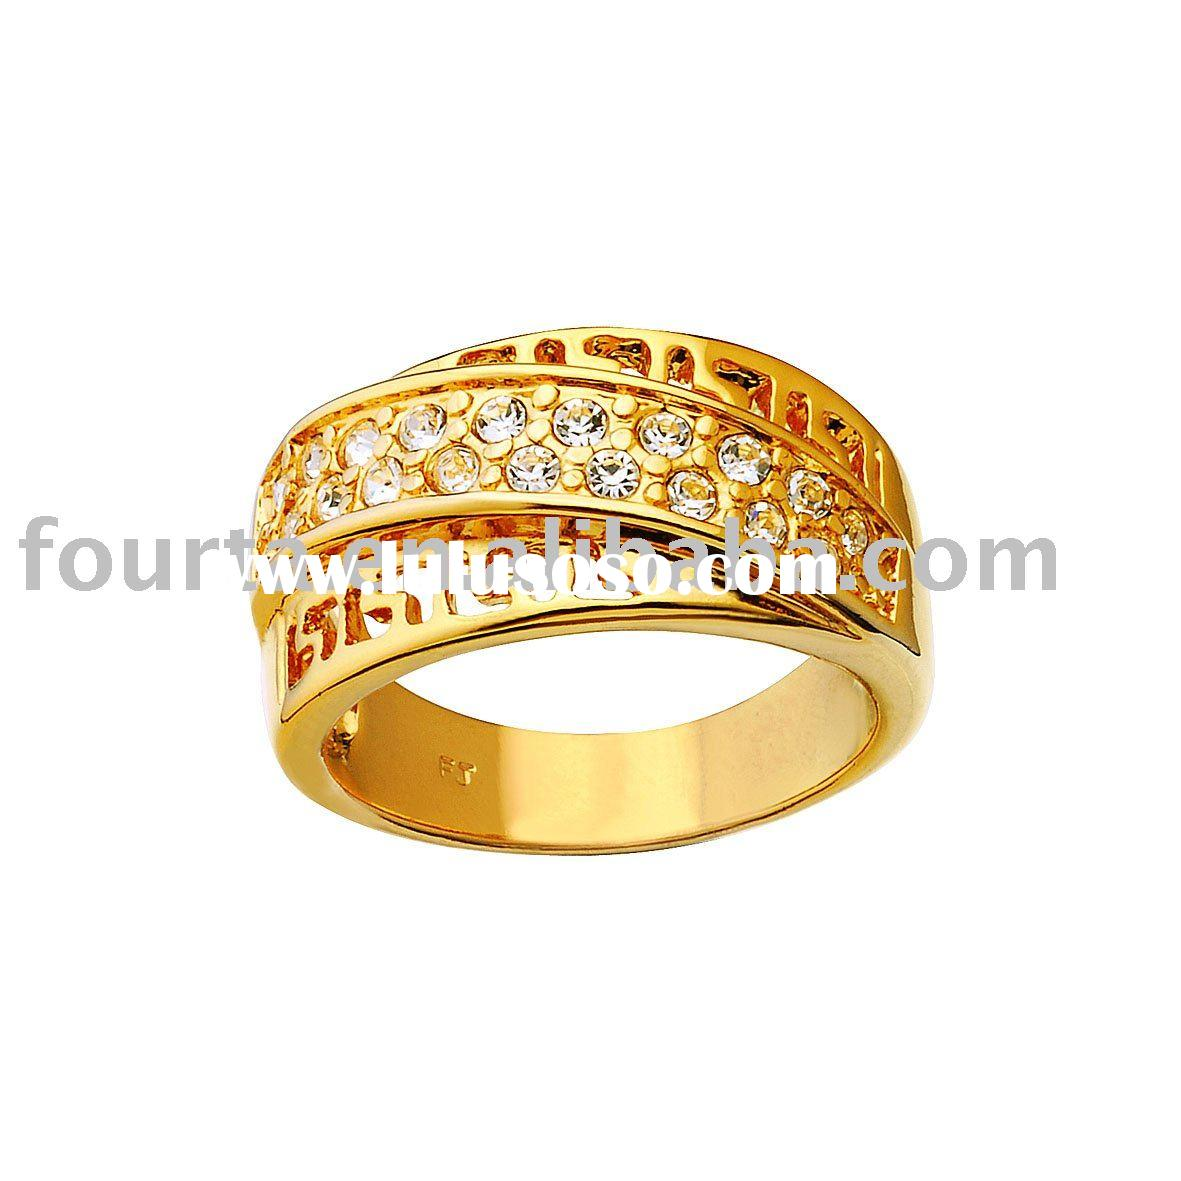 Fashion 18k gold jewelry rings 13200147